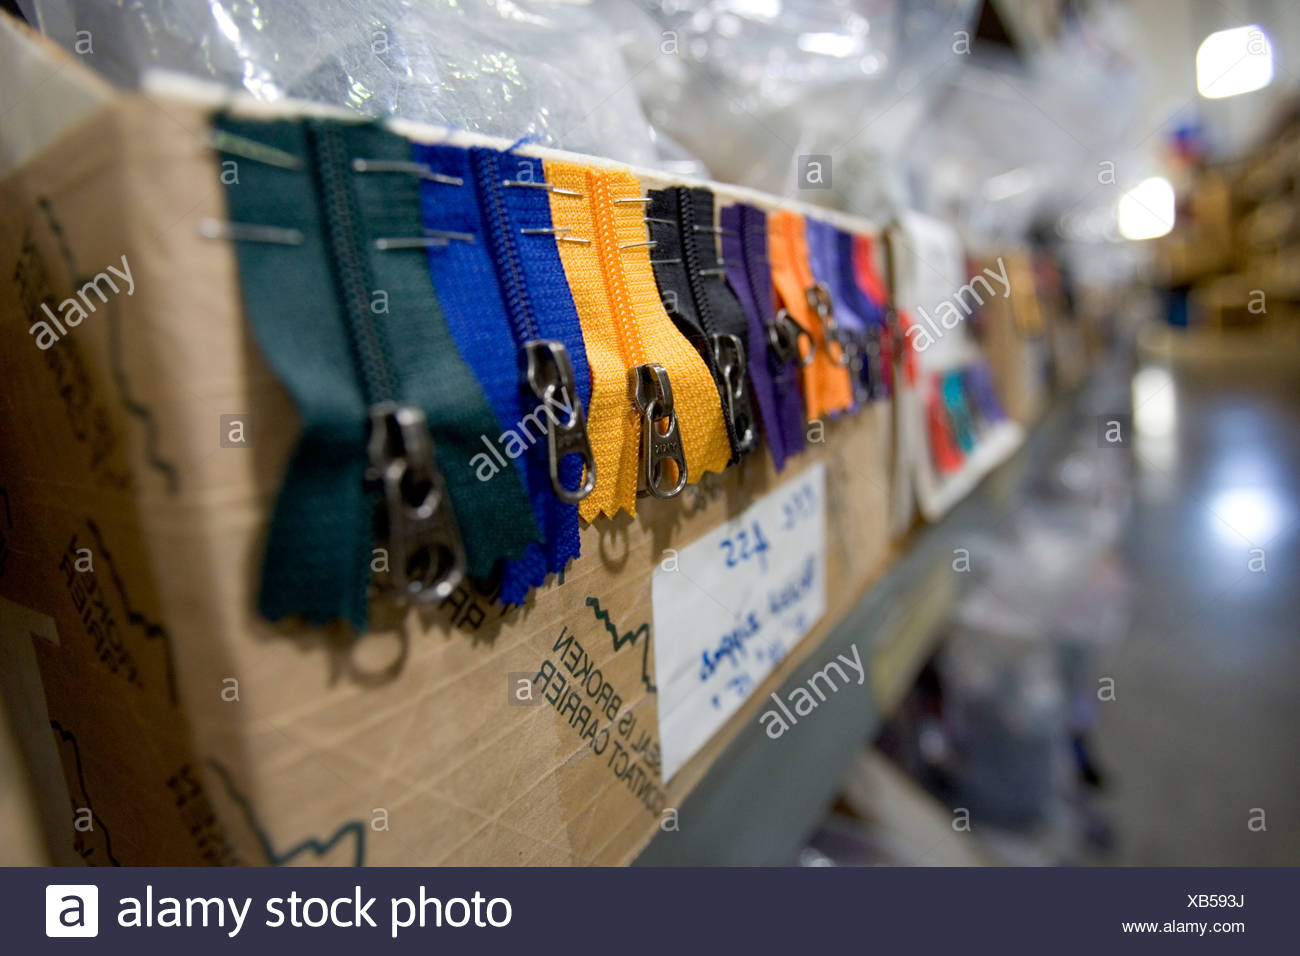 Zippers hanging out of a box in a clothing distribution center in Reno Nevada. Stock Photo